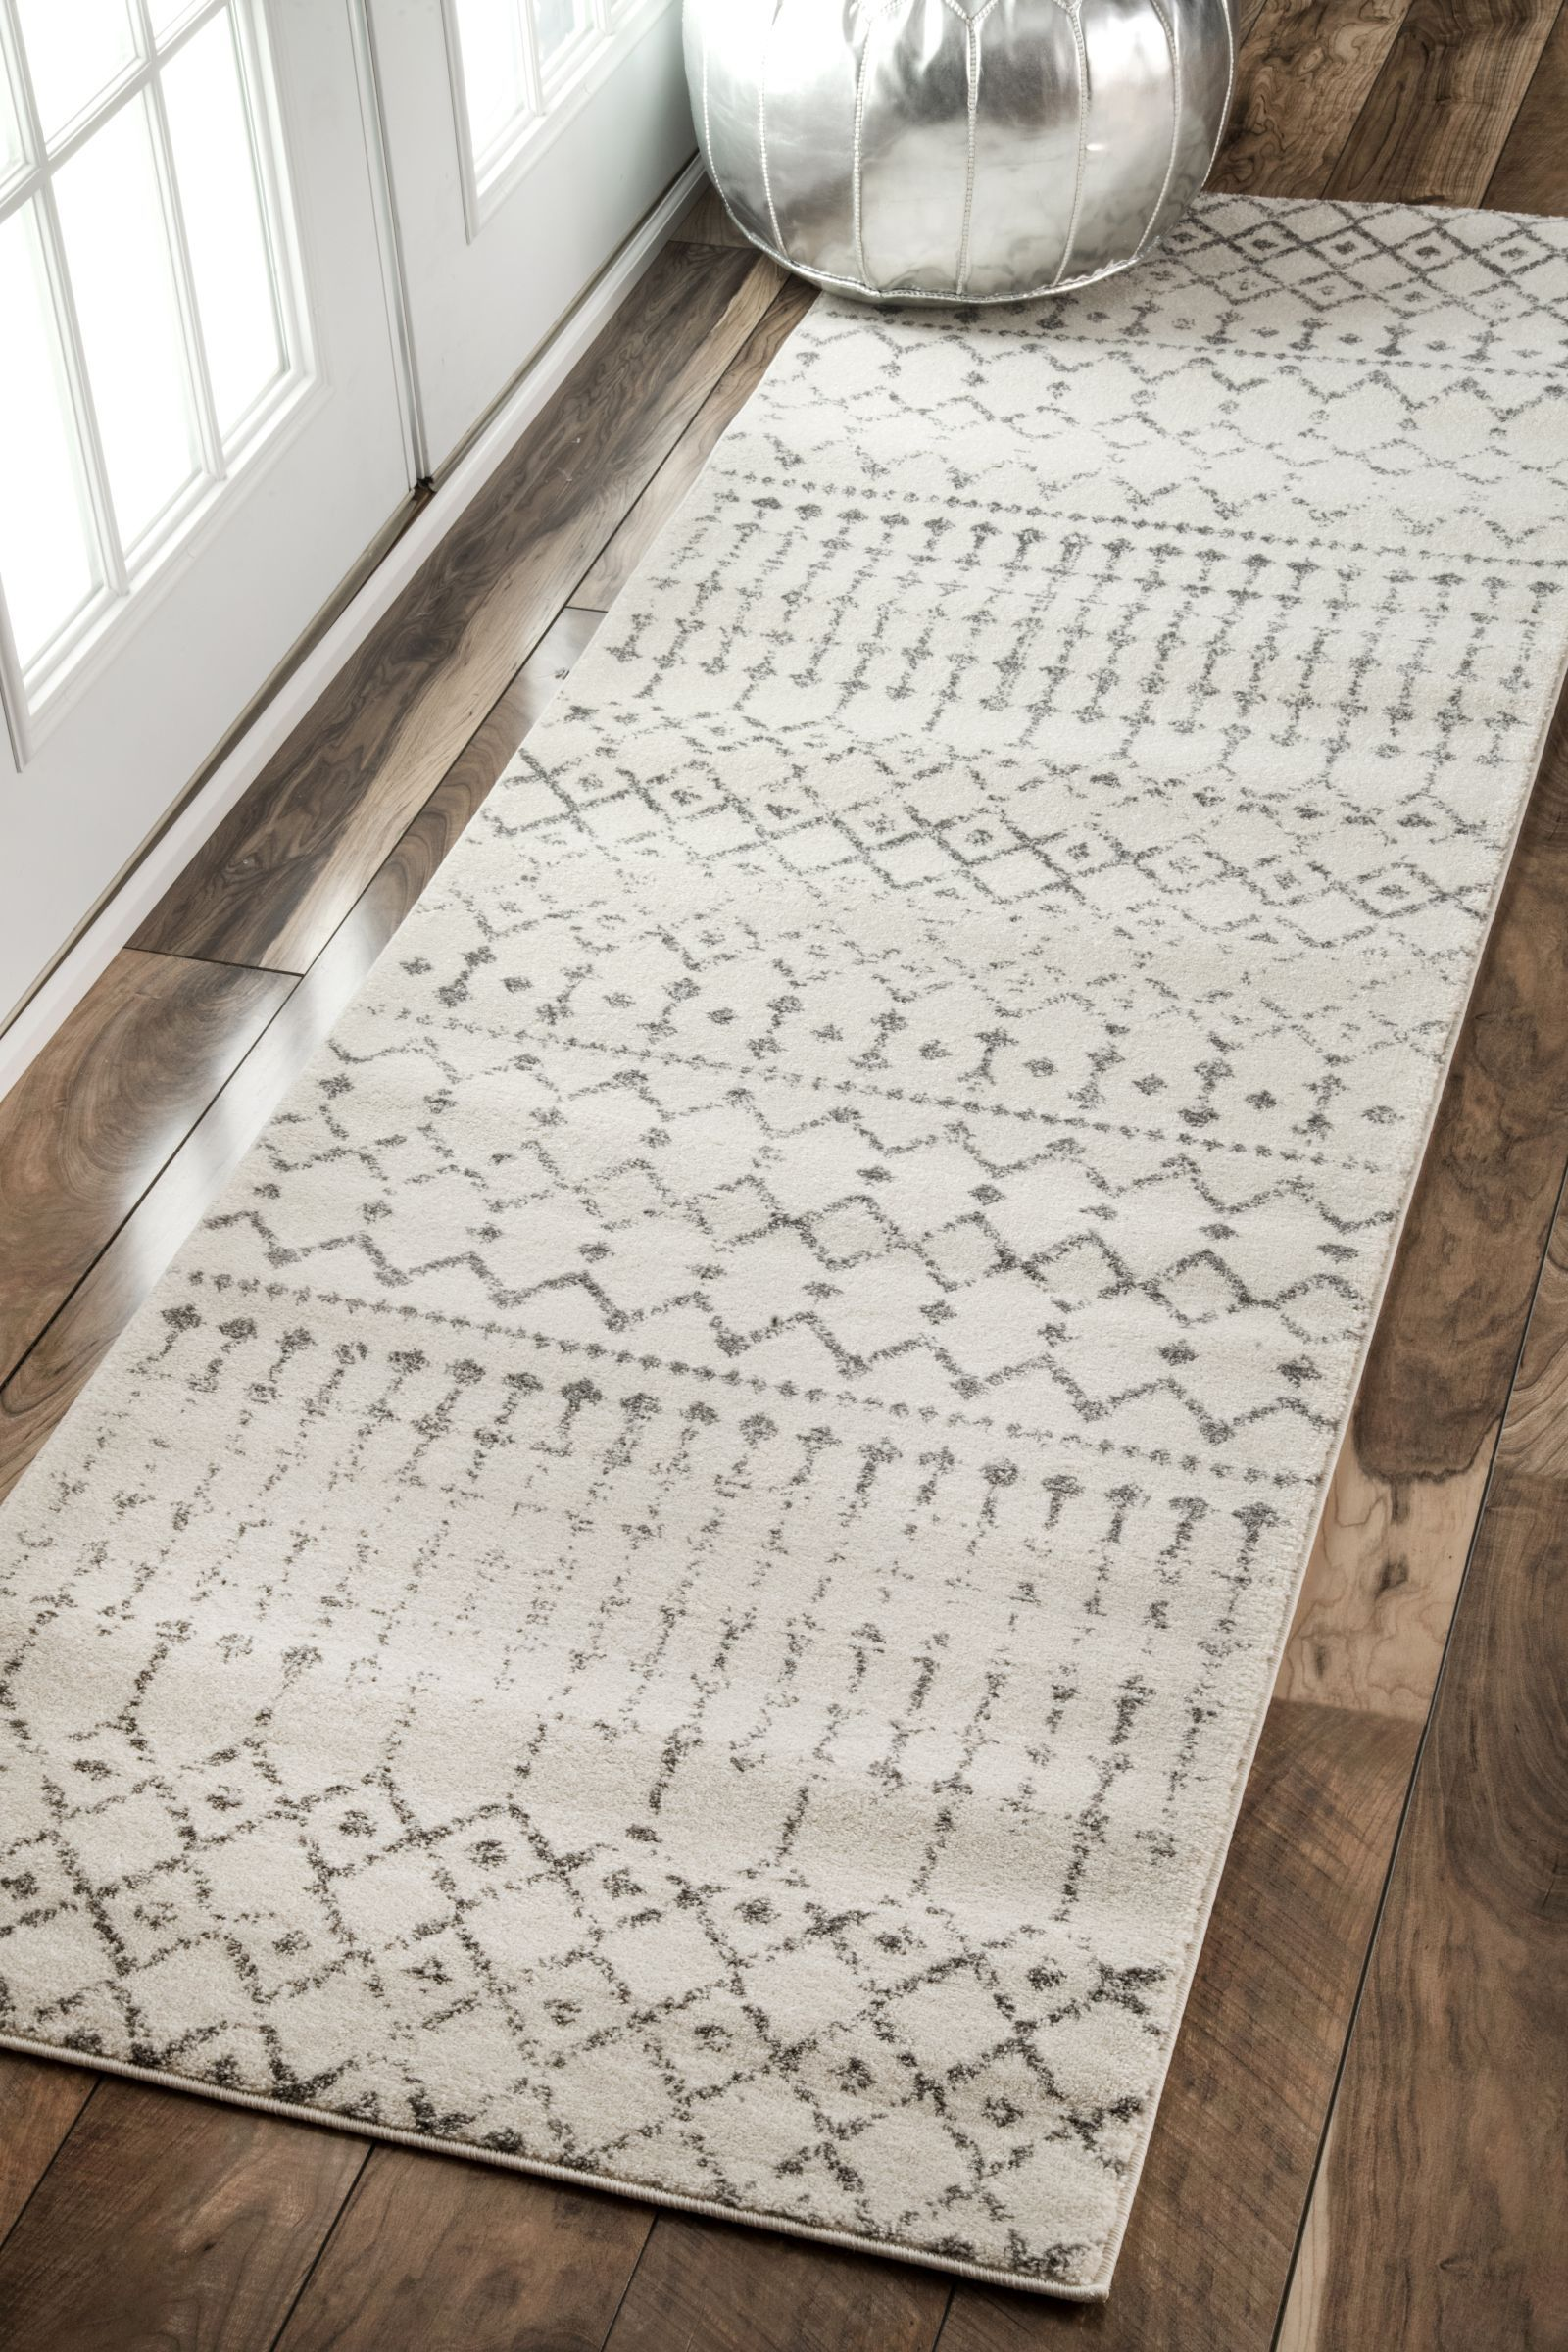 bosphorusmoroccan trellis bd16 rug rugs usa shag rugs and house